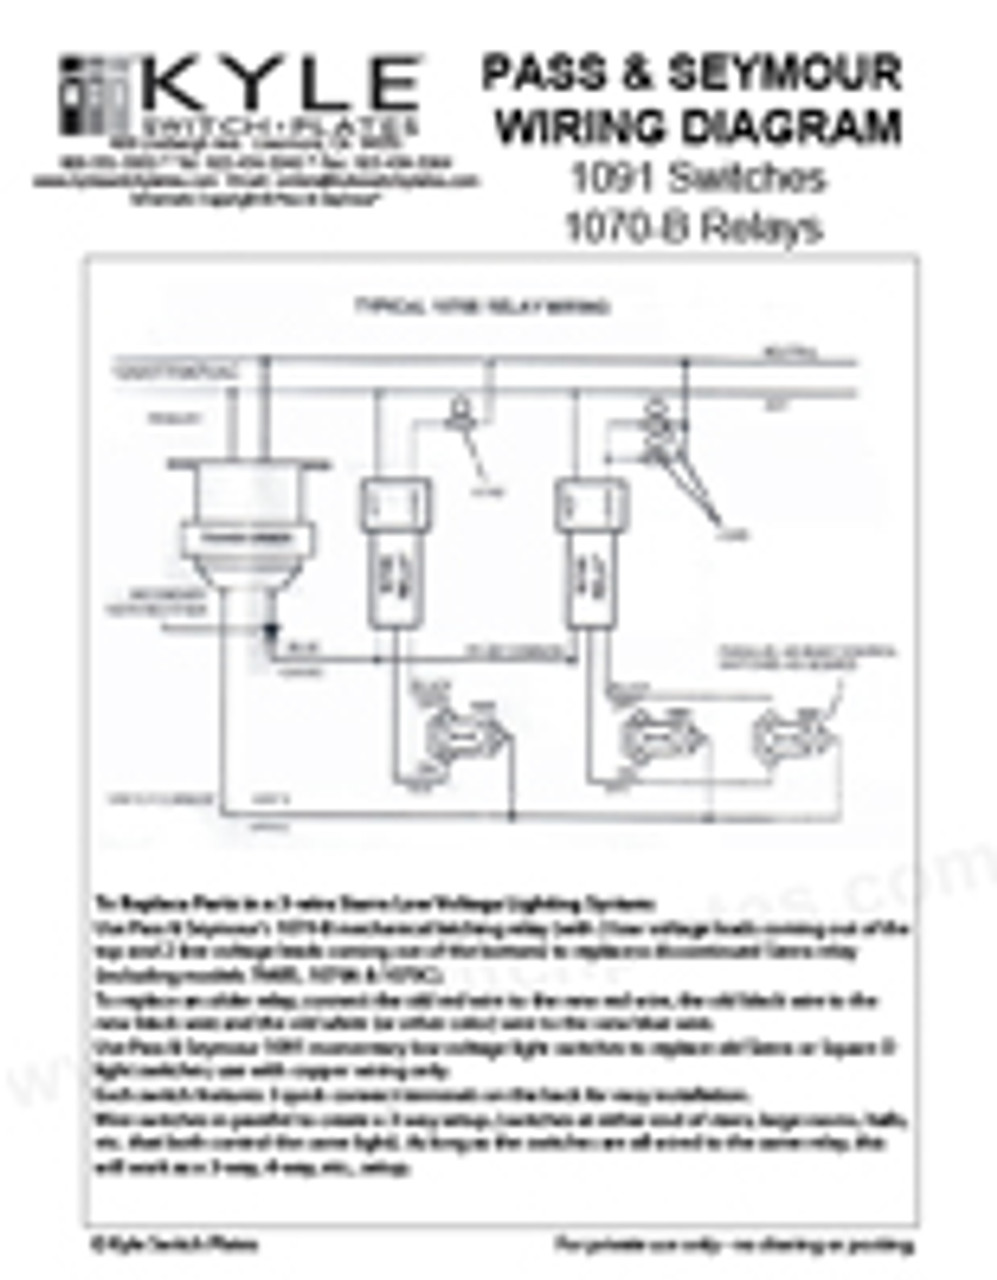 Low Voltage Relay Switch : voltage, relay, switch, Sierra, Voltage, Switch, Relay, Wiring, Guide, Download